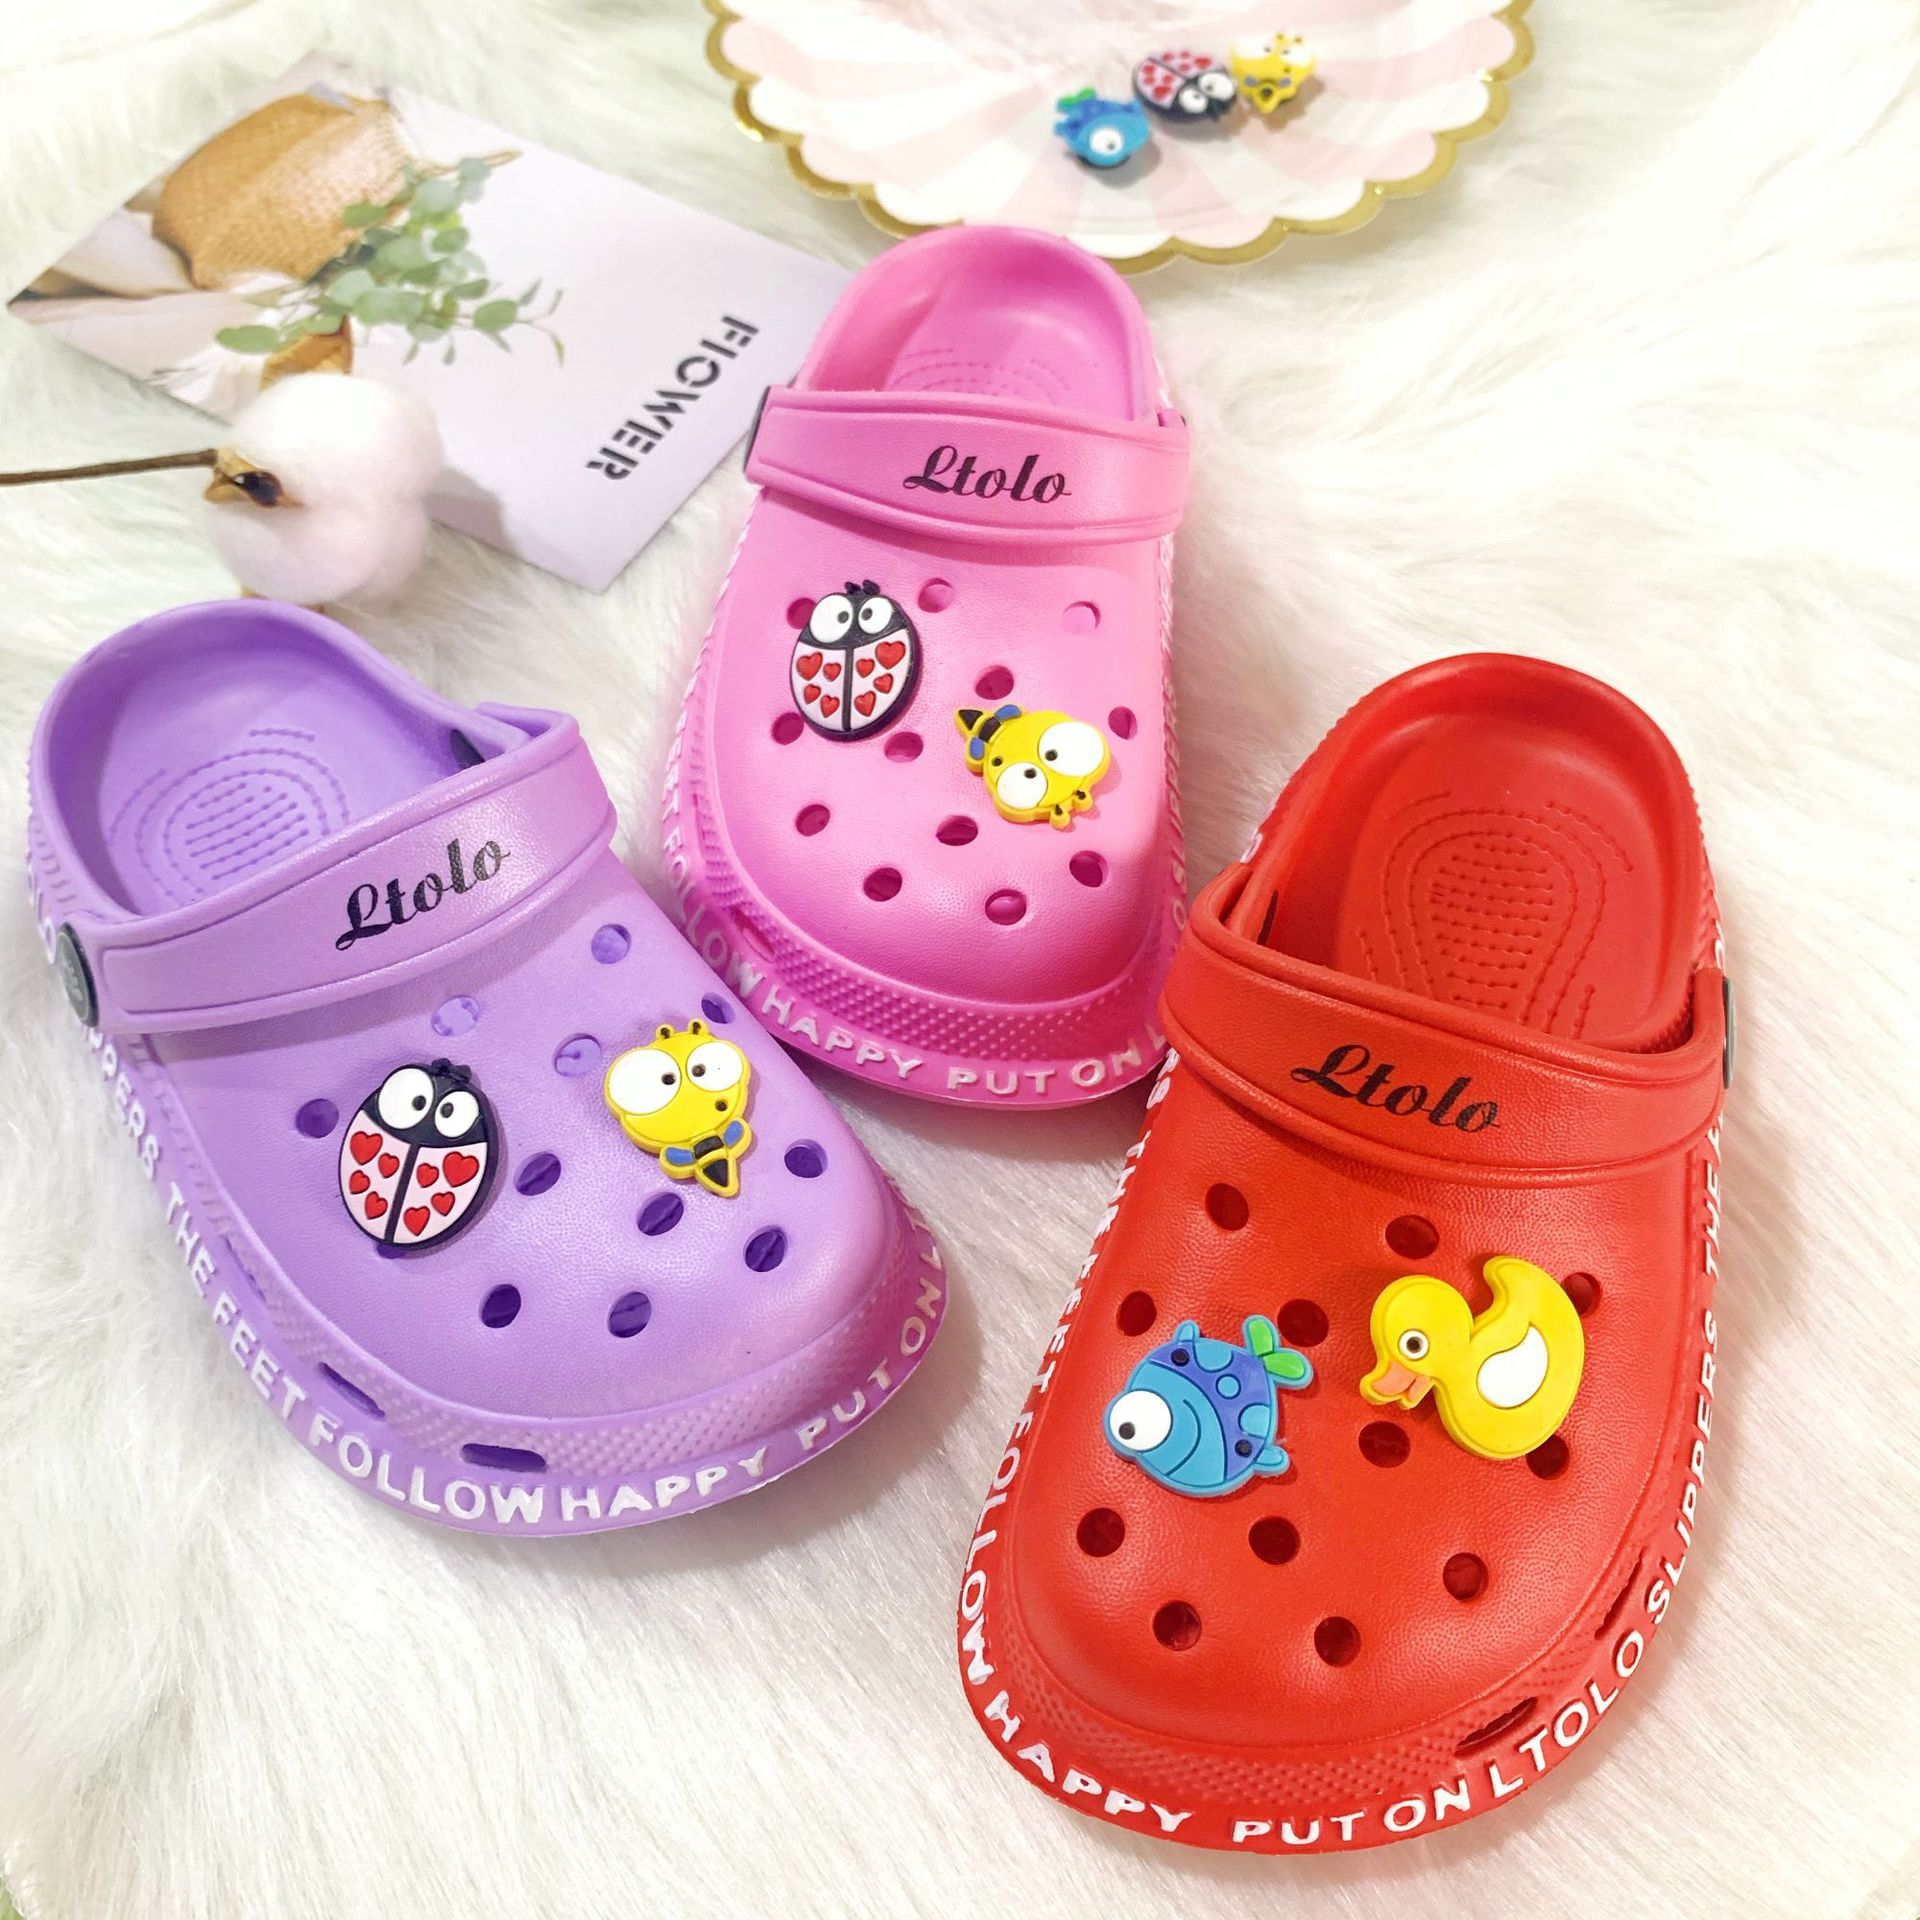 GIRL BABY KIDS SUMMER TODDLERS CAVE <font><b>SHOES</b></font> MULES CROC CHILDREN BEACH SANDALS SLIPPERS FOR GIRLS23 24 25 26 27 28 2 <font><b>30</b></font> 31 32 33 34 image